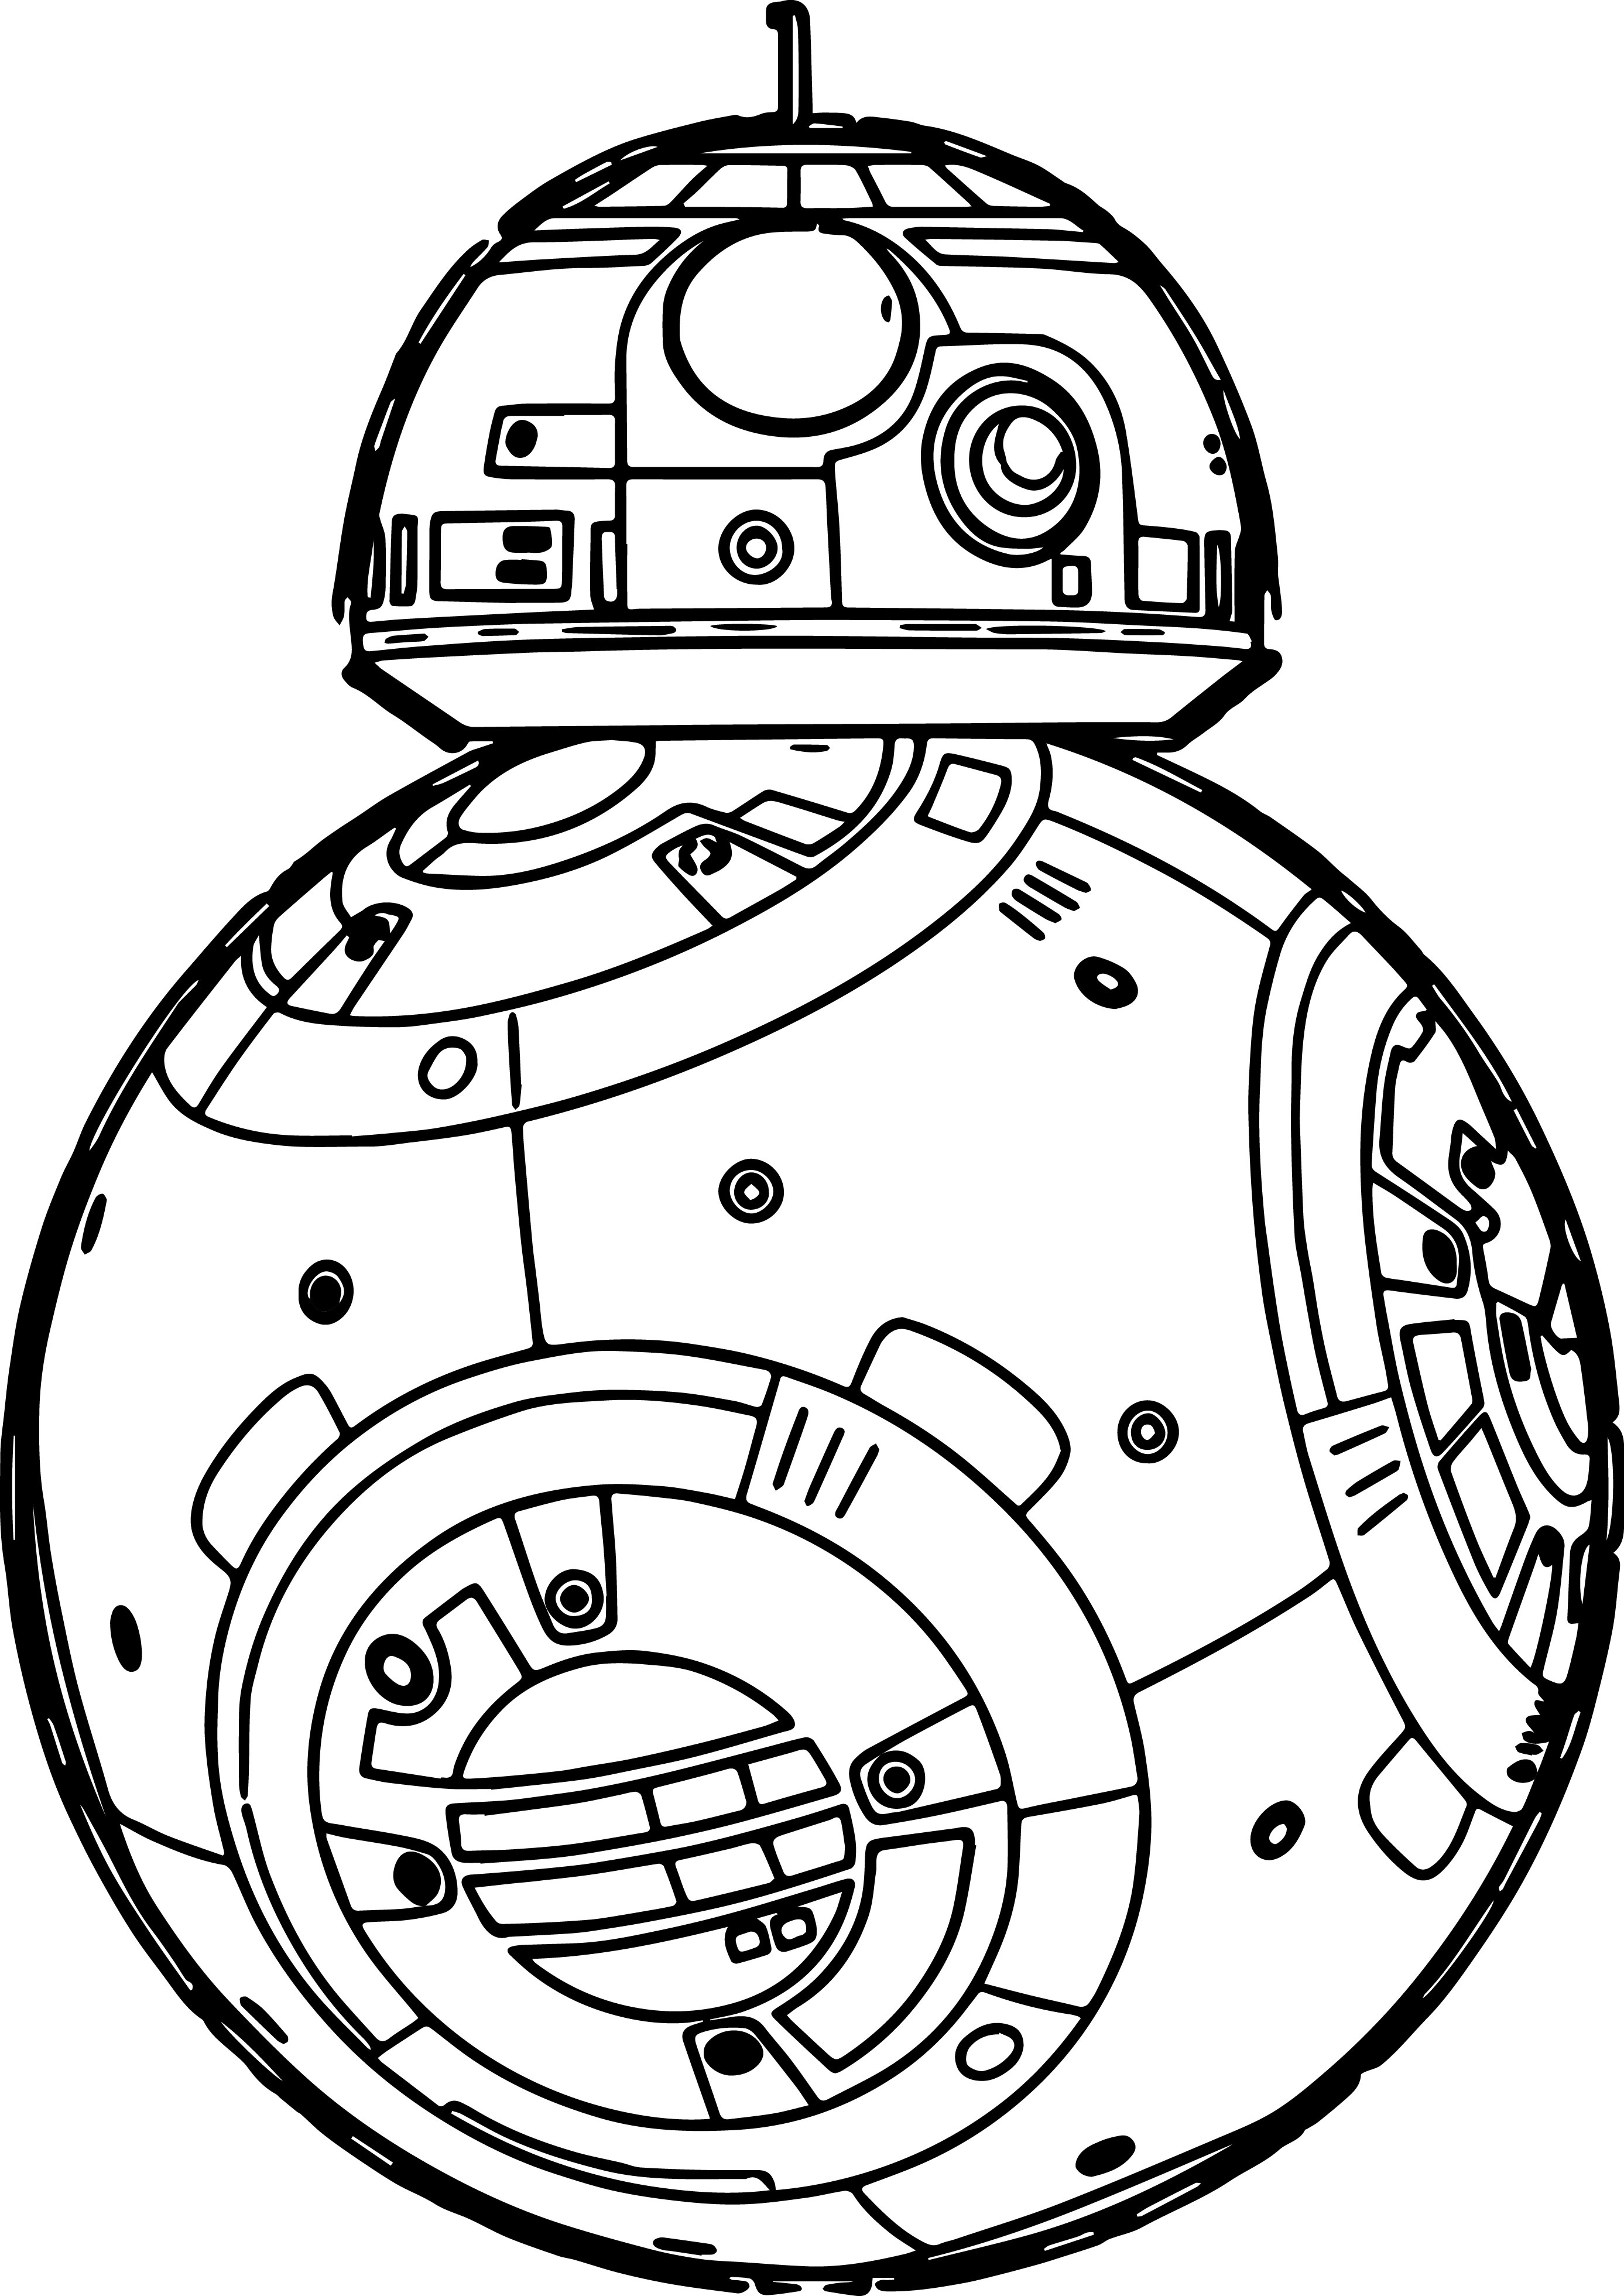 2774x3921 Star Wars The Force Awakens Coloring Pages Star